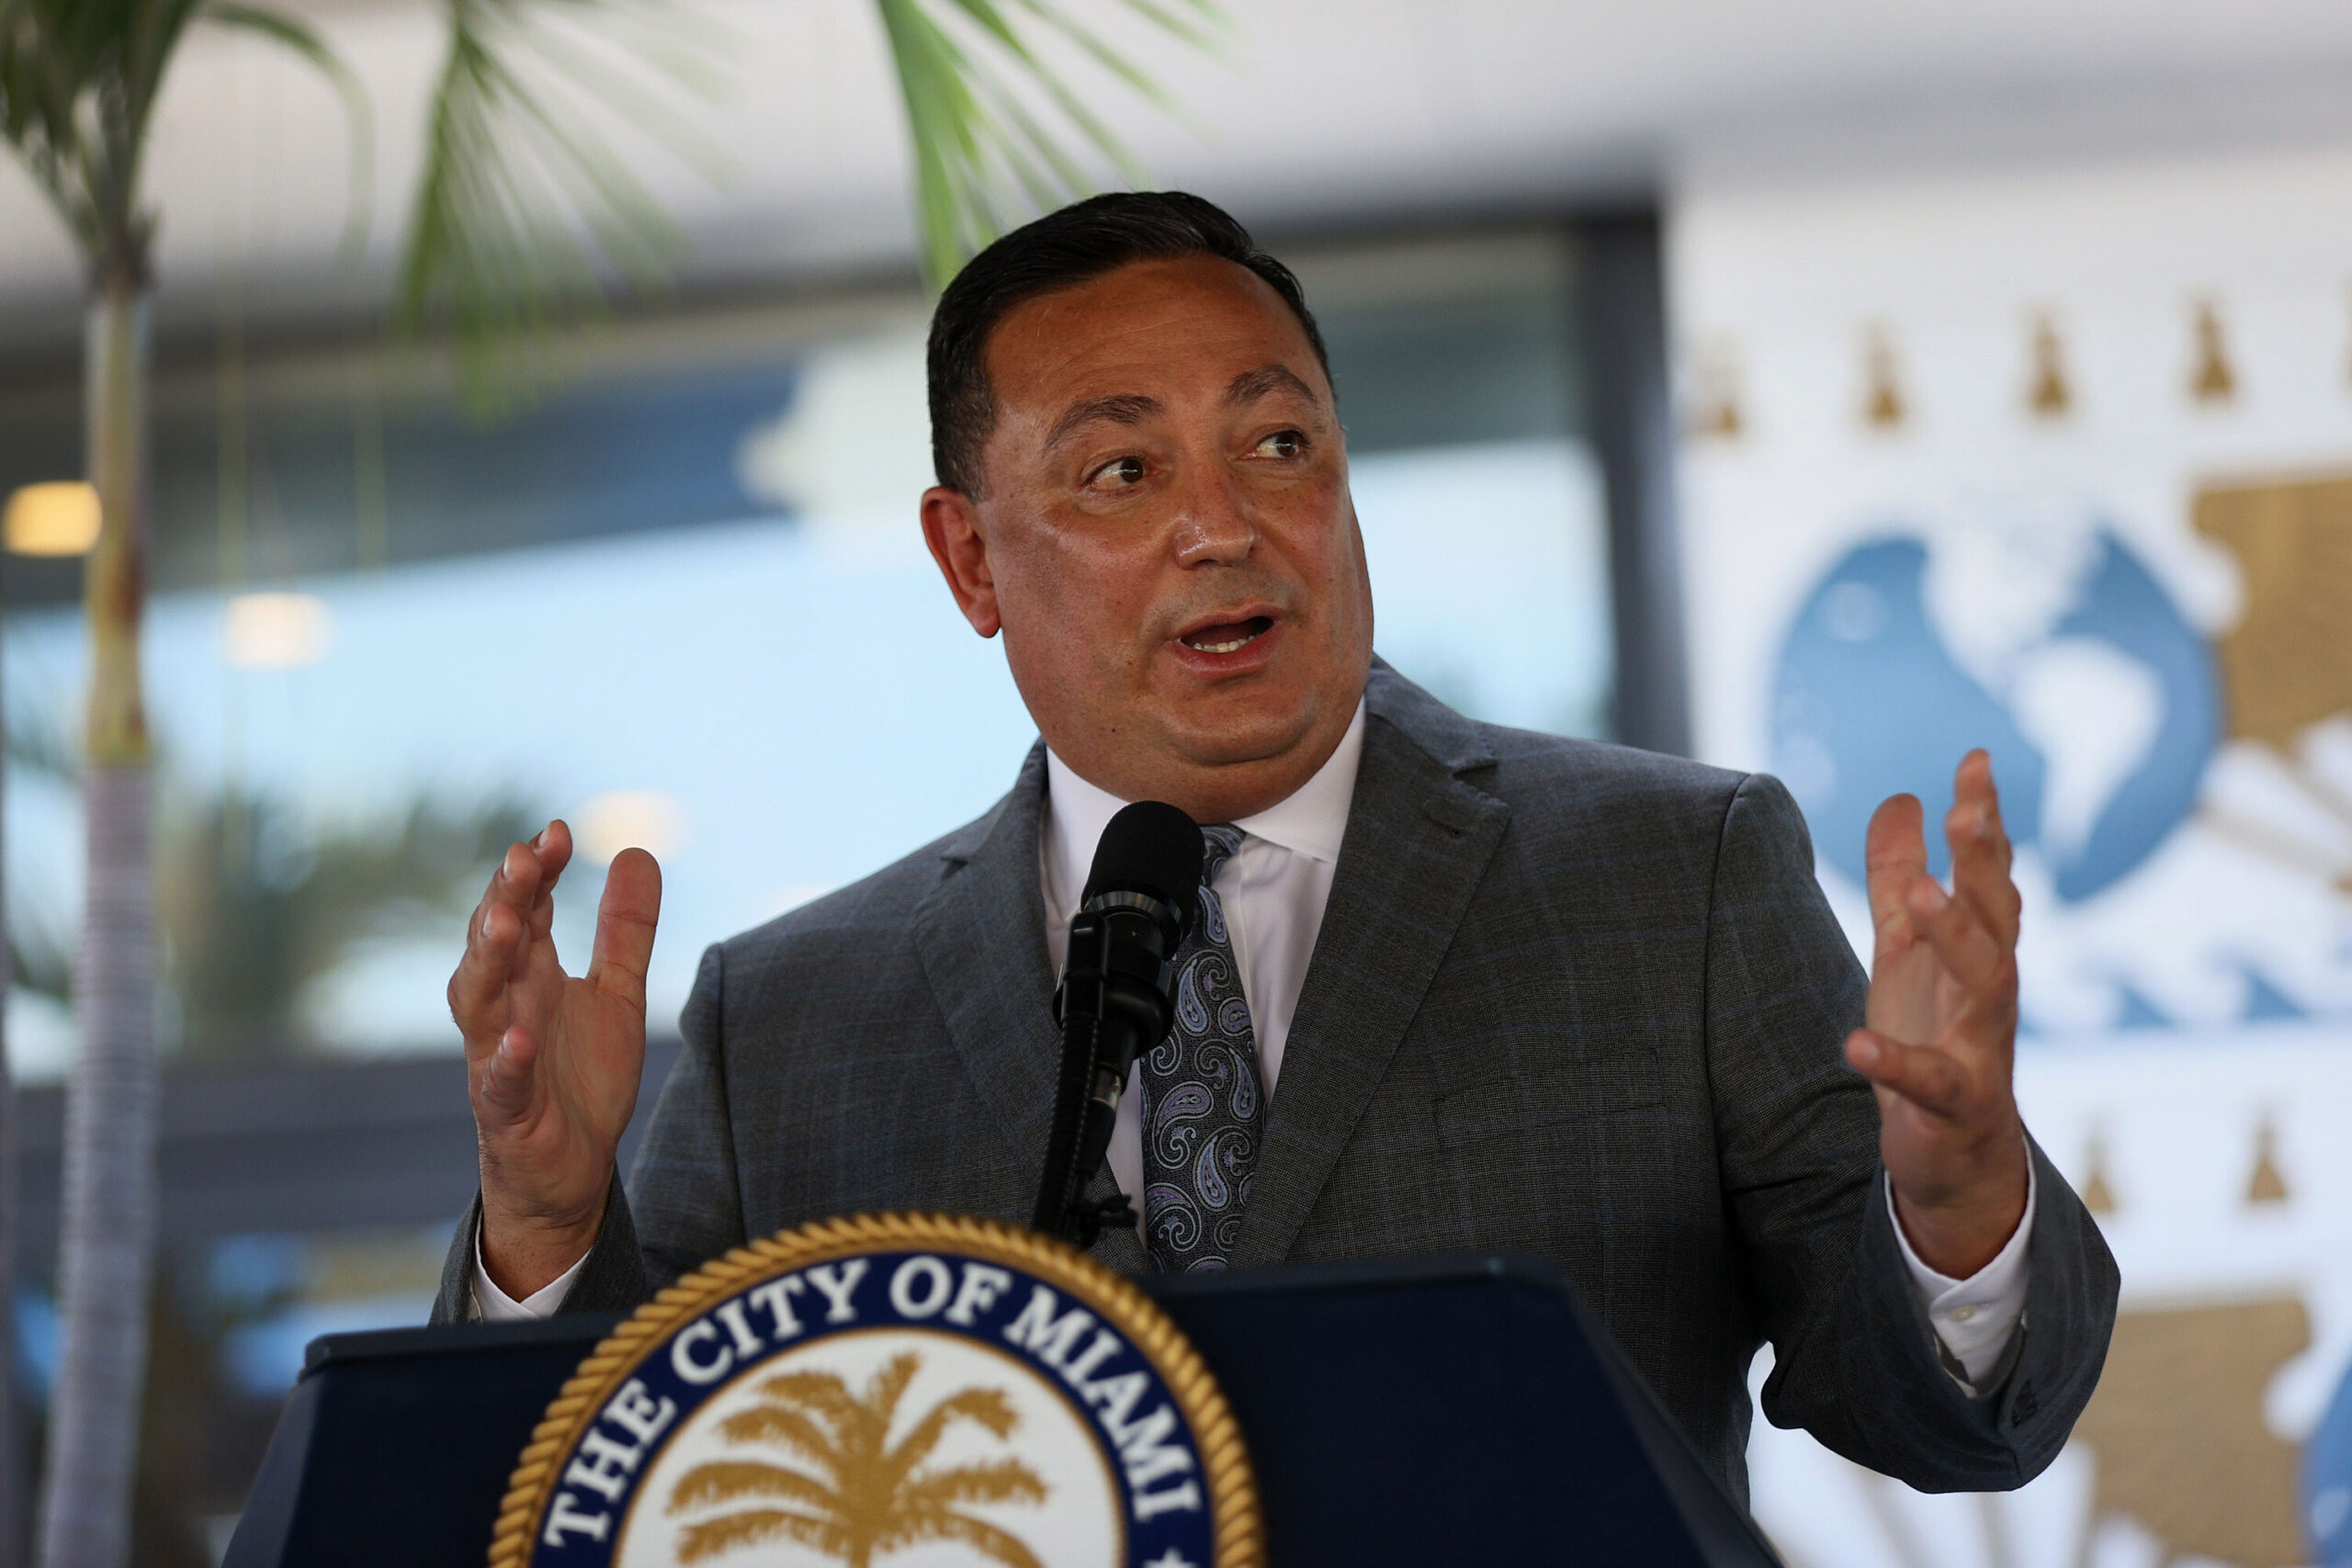 <i>Joe Raedle/Getty Images</i><br/>The Miami City Commission began a public hearing on October 14 to address the complaints against police Chief Art Acevedo